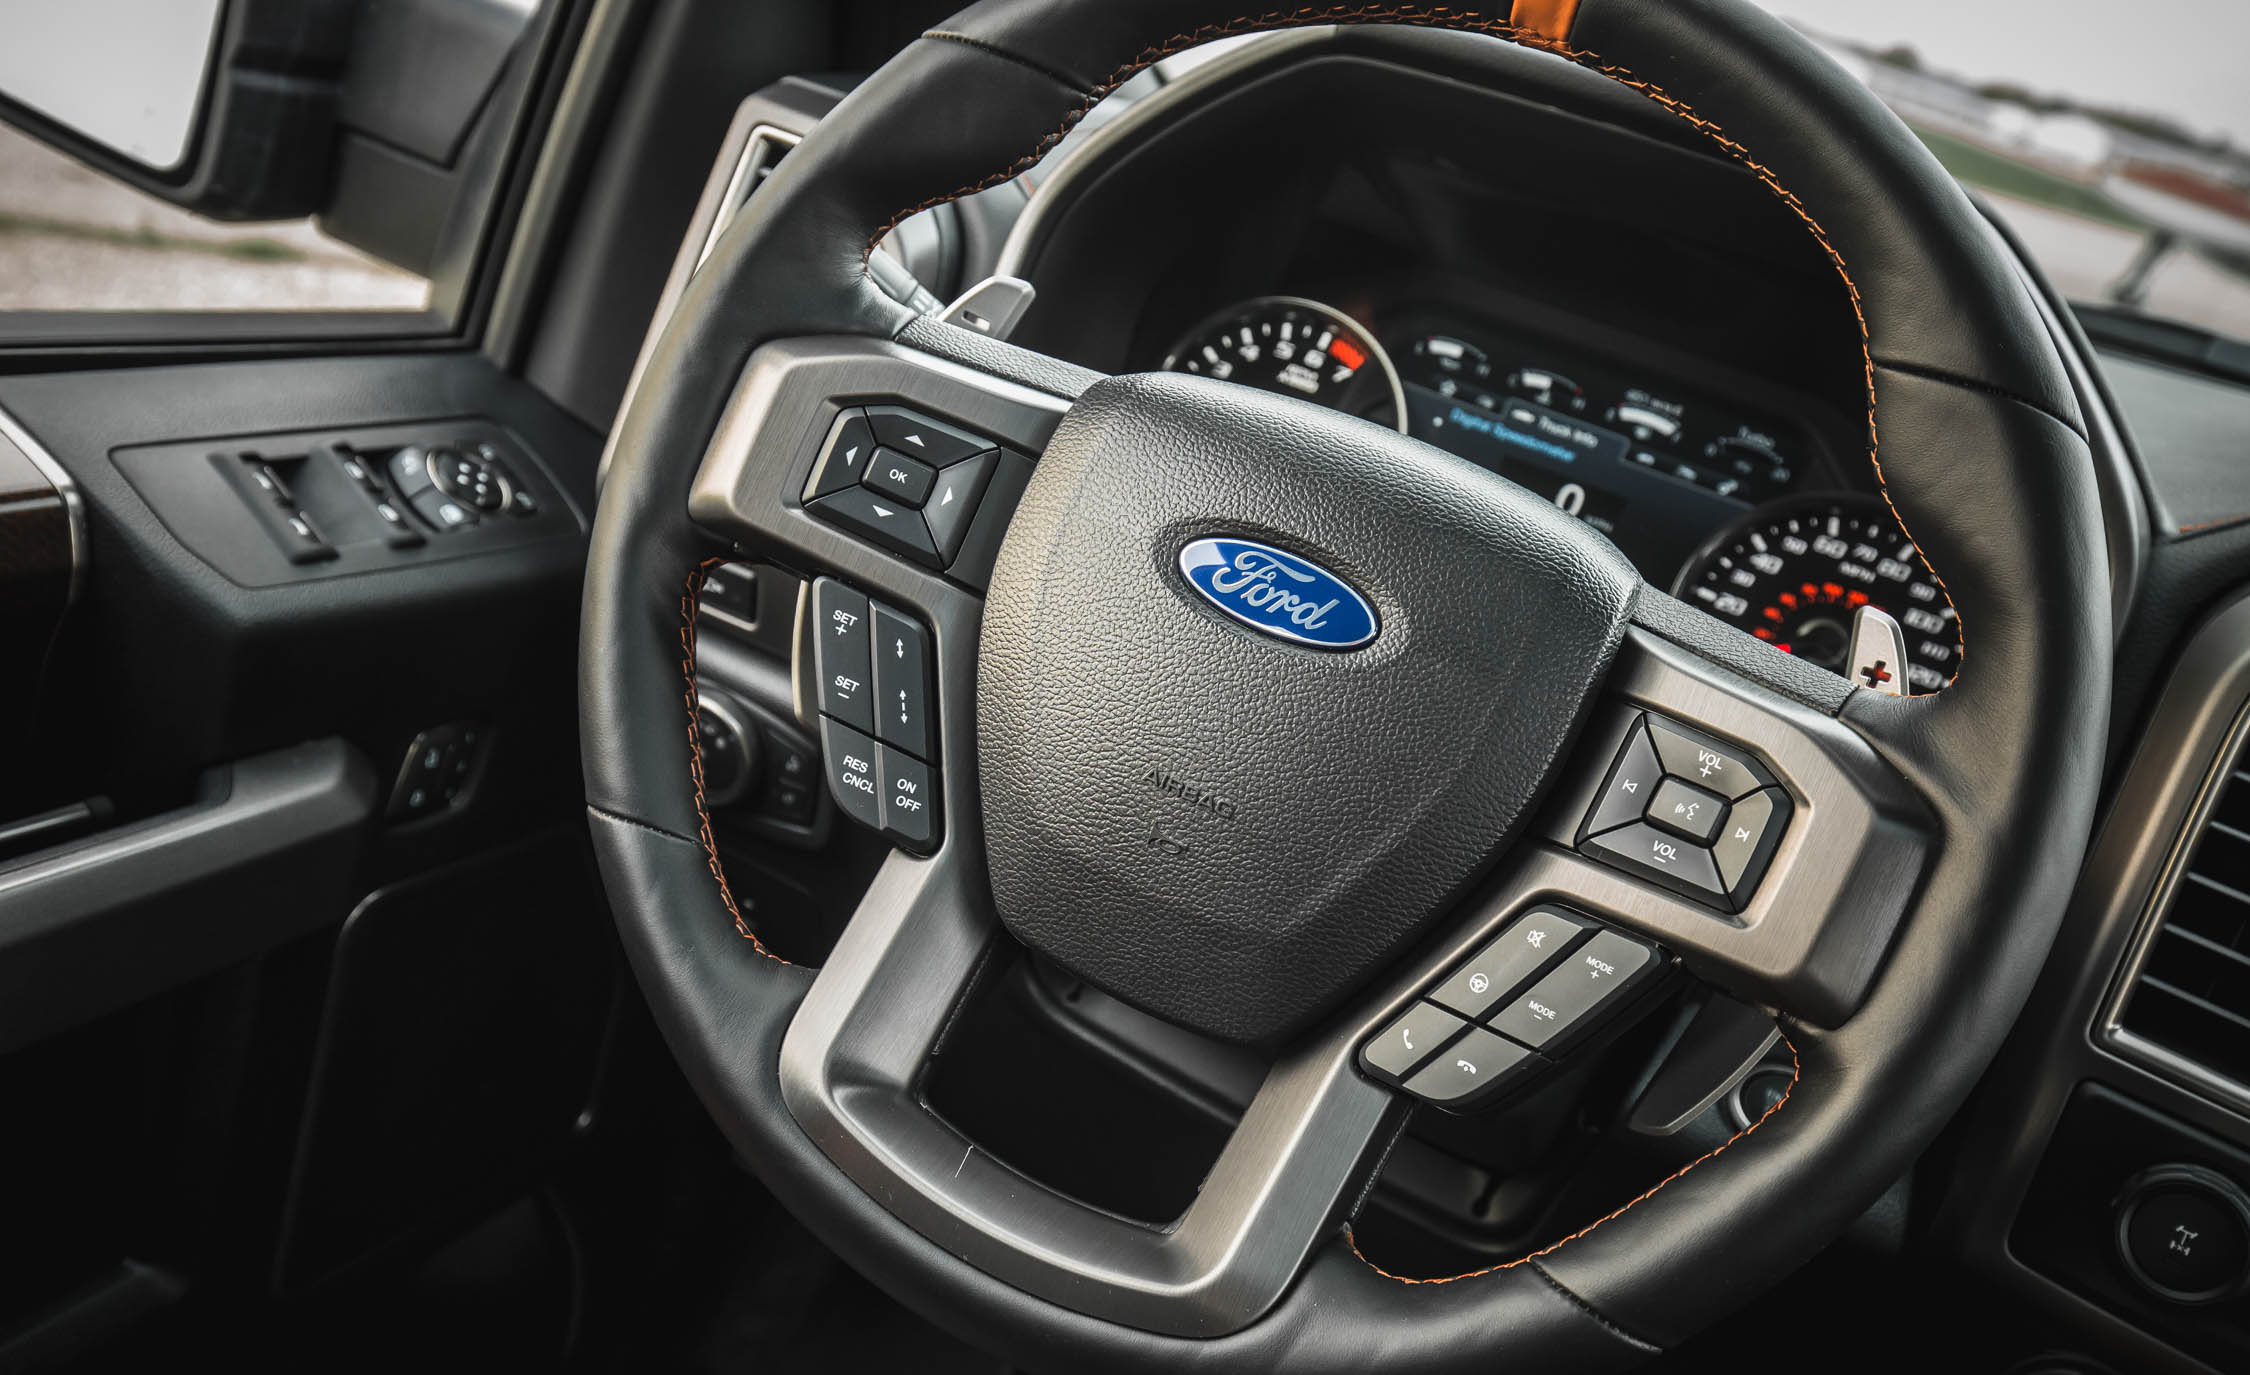 2017 Ford F 150 Raptor SuperCrew Interior View Steering Wheel (View 5 of 47)